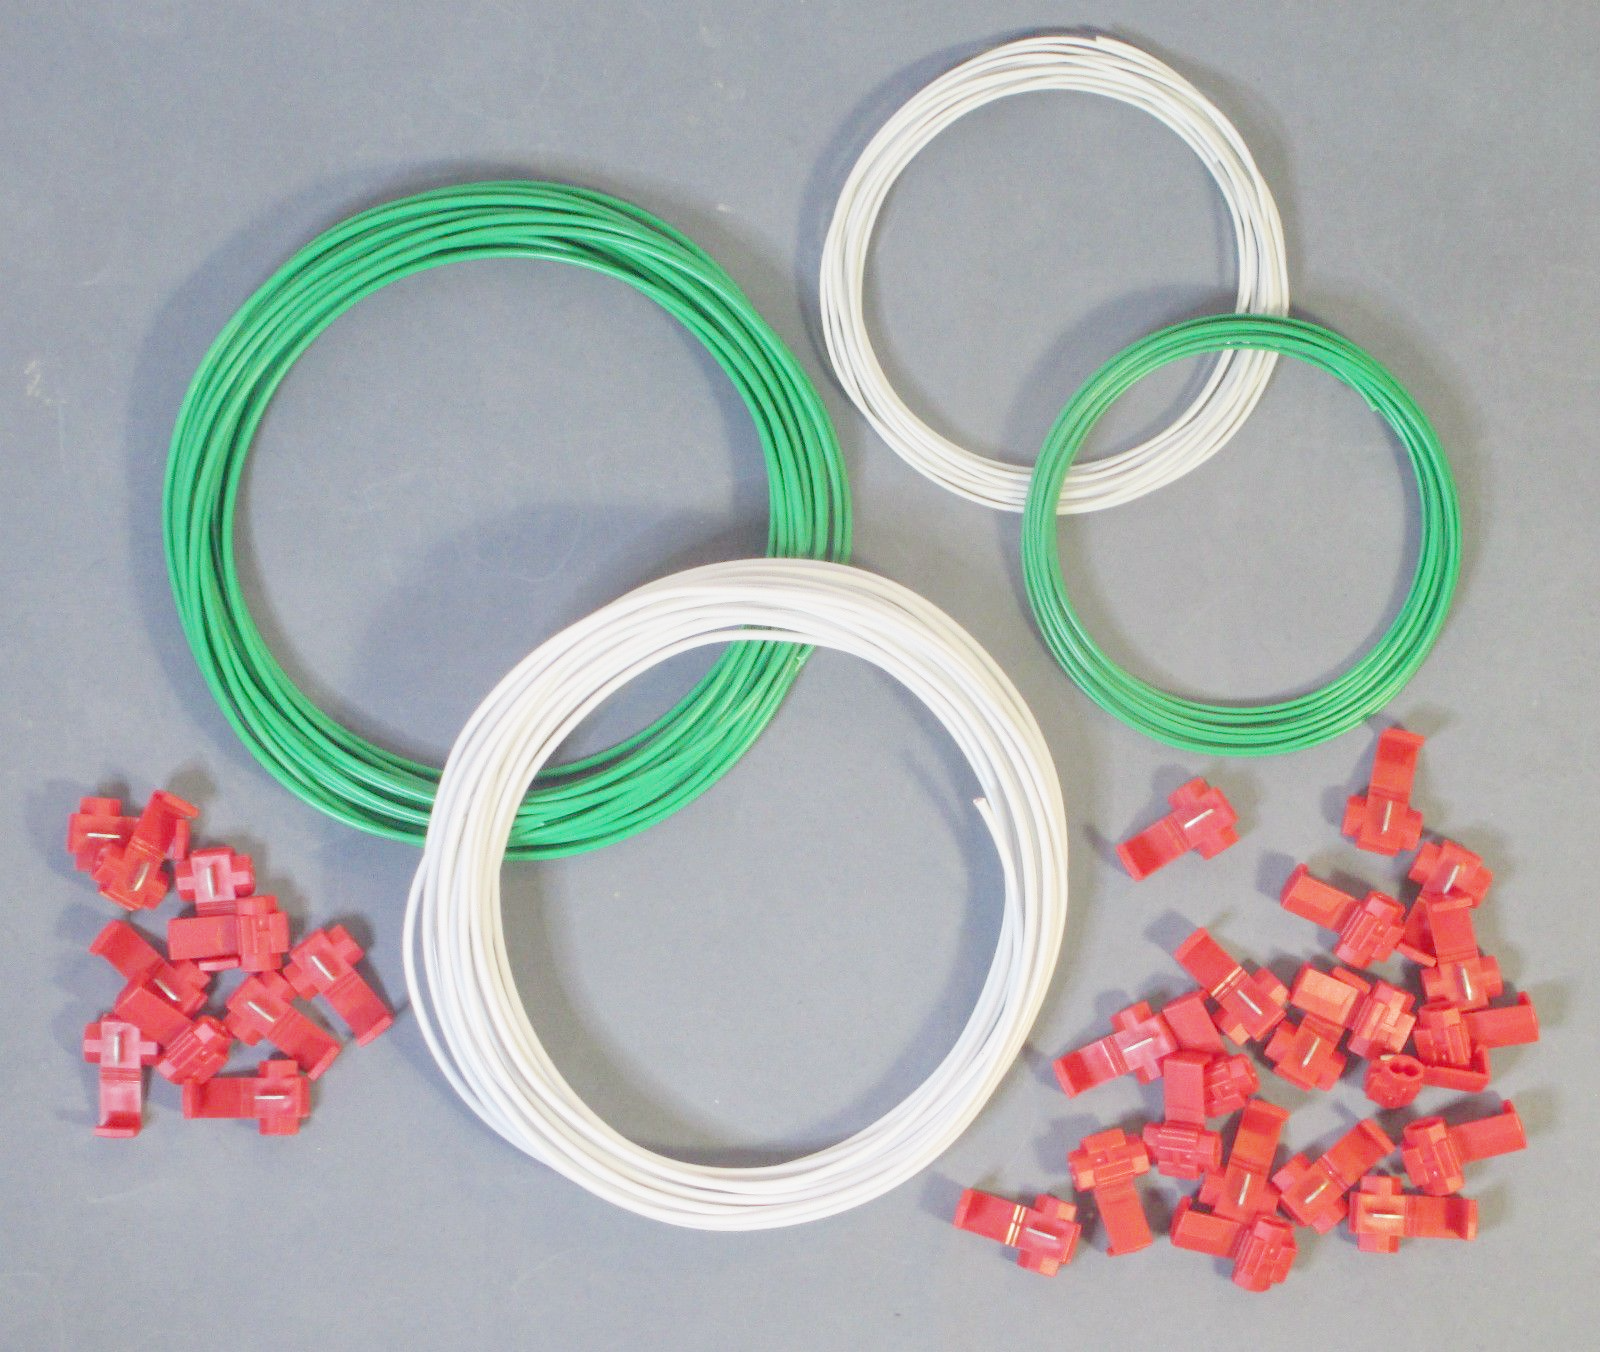 Medium & Large DCC Layout Wire Starter Kit Green & White - Track Bus ...